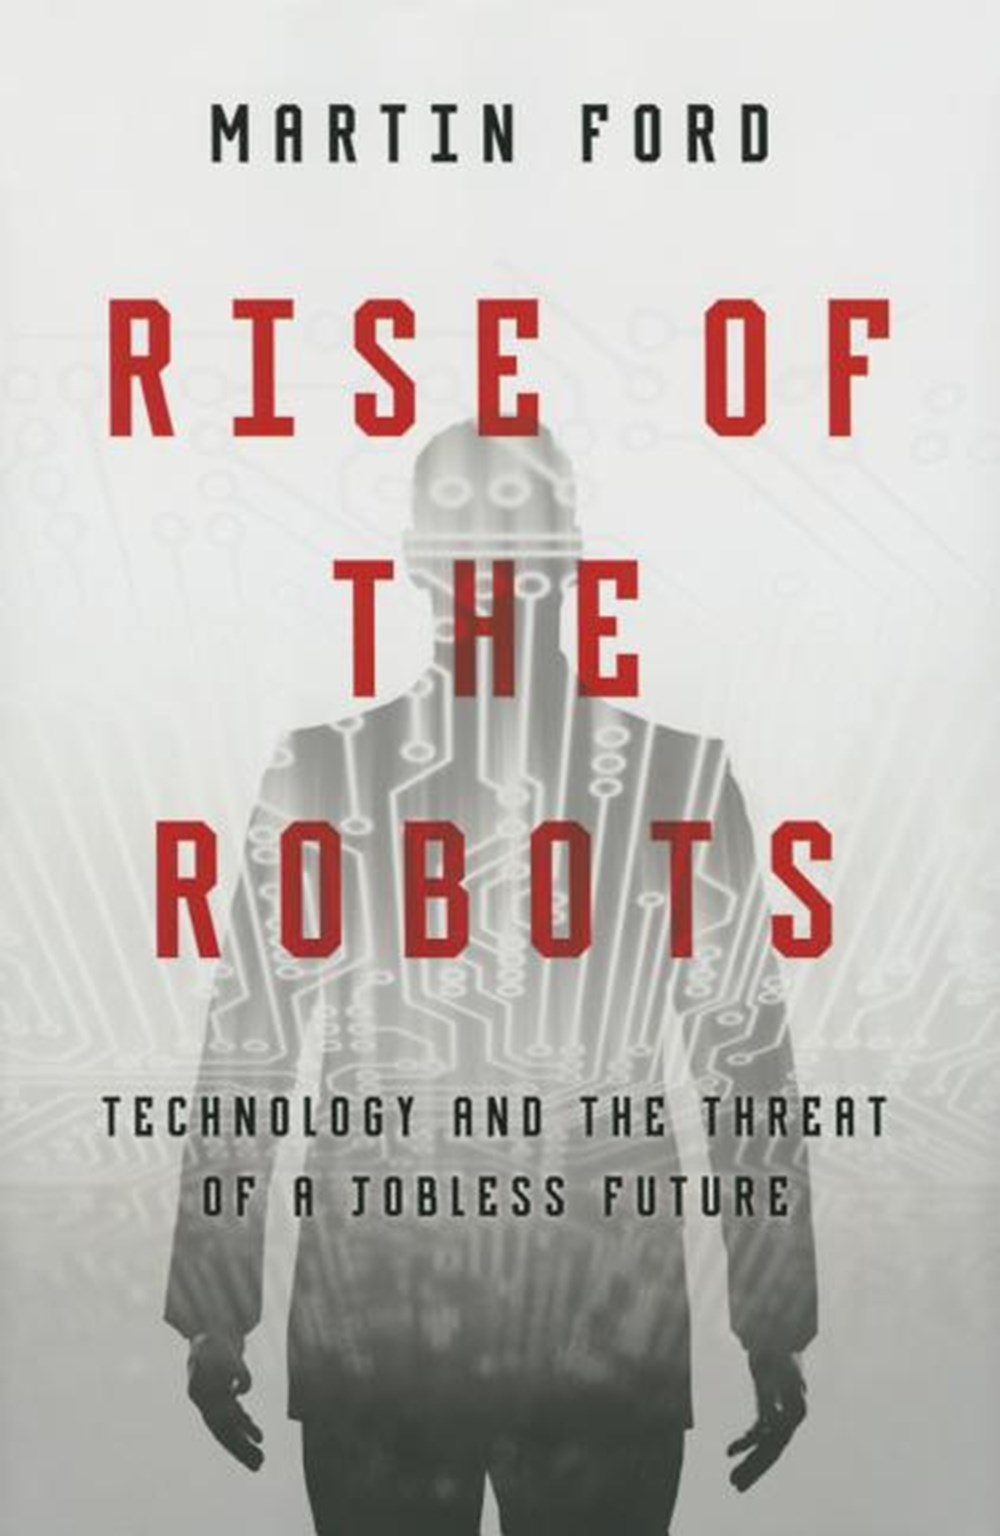 Rise of the Robots Technology and the Threat of a Jobless Future